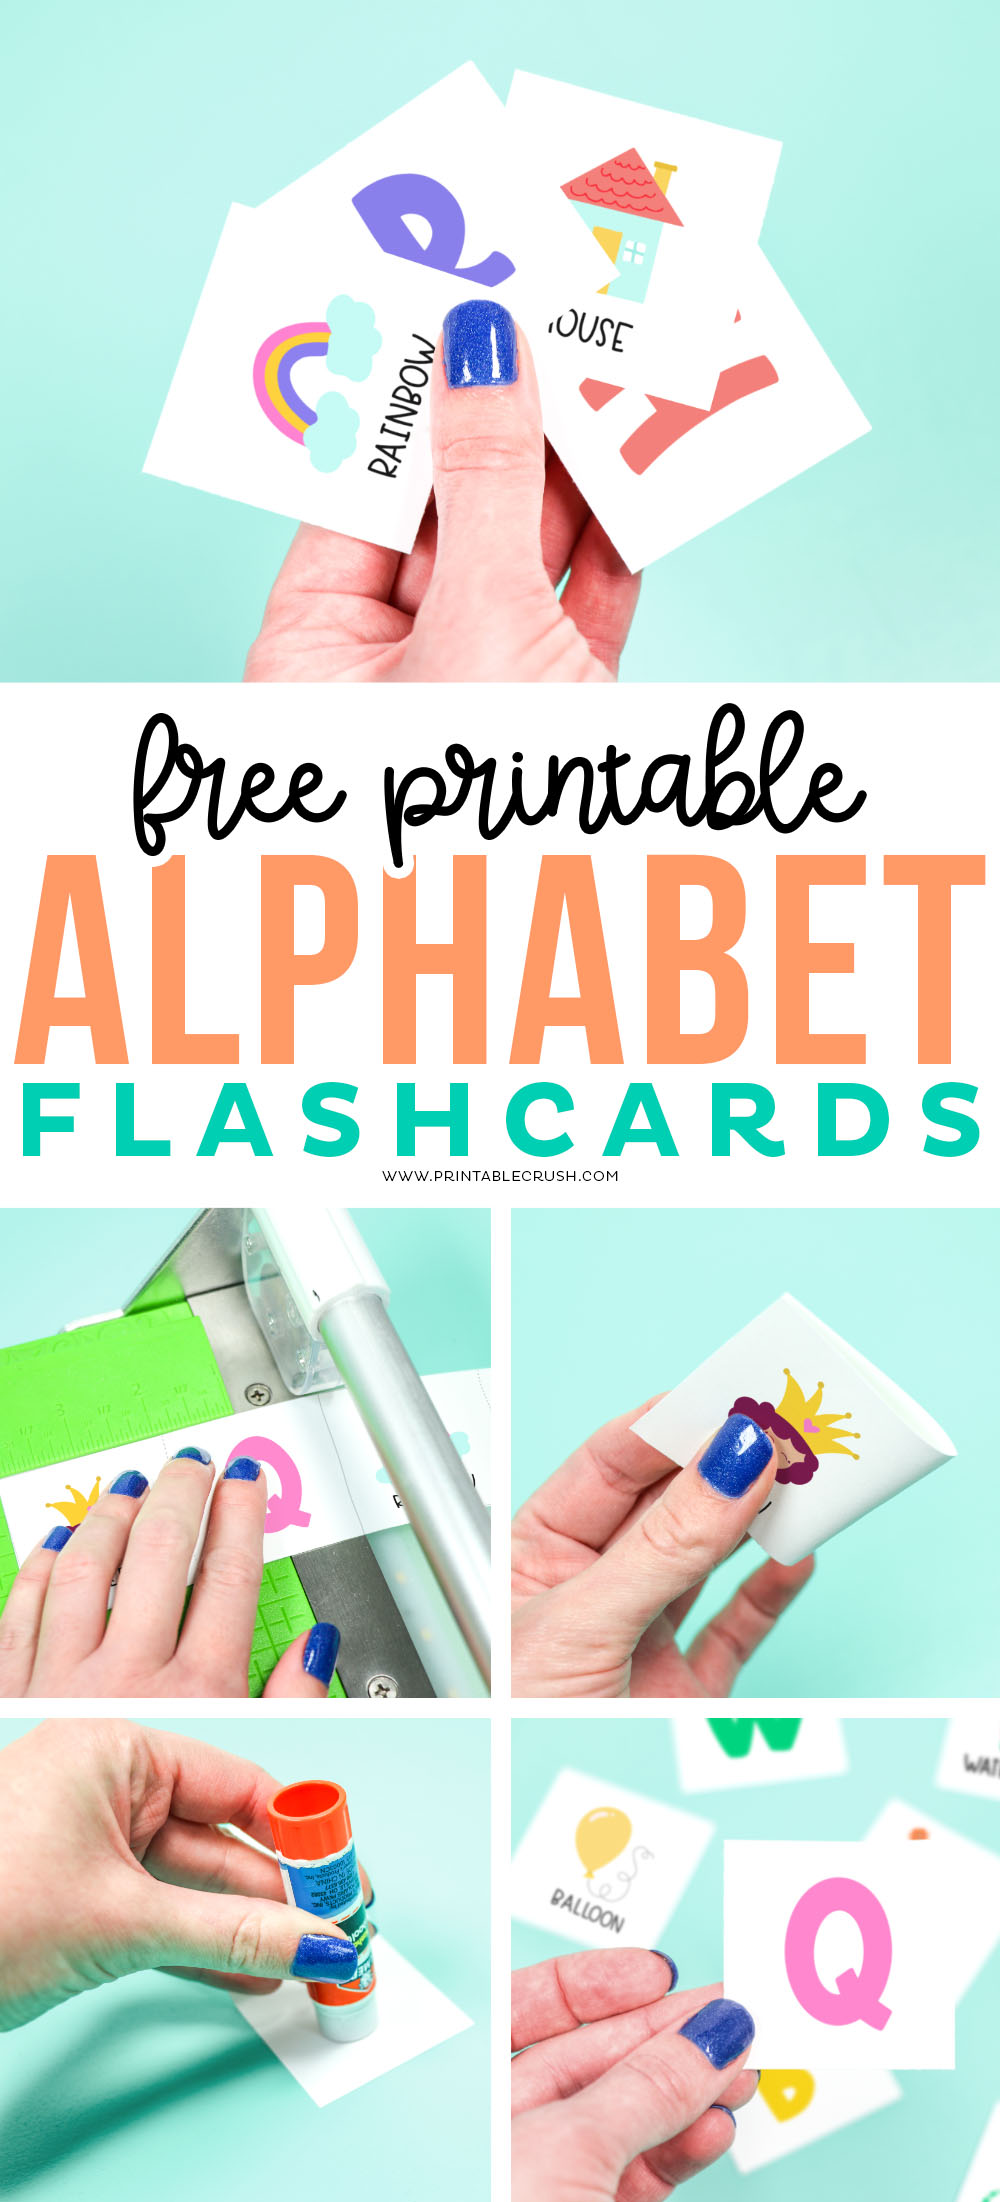 How to make Alphabet Flashcards - Printable Crush